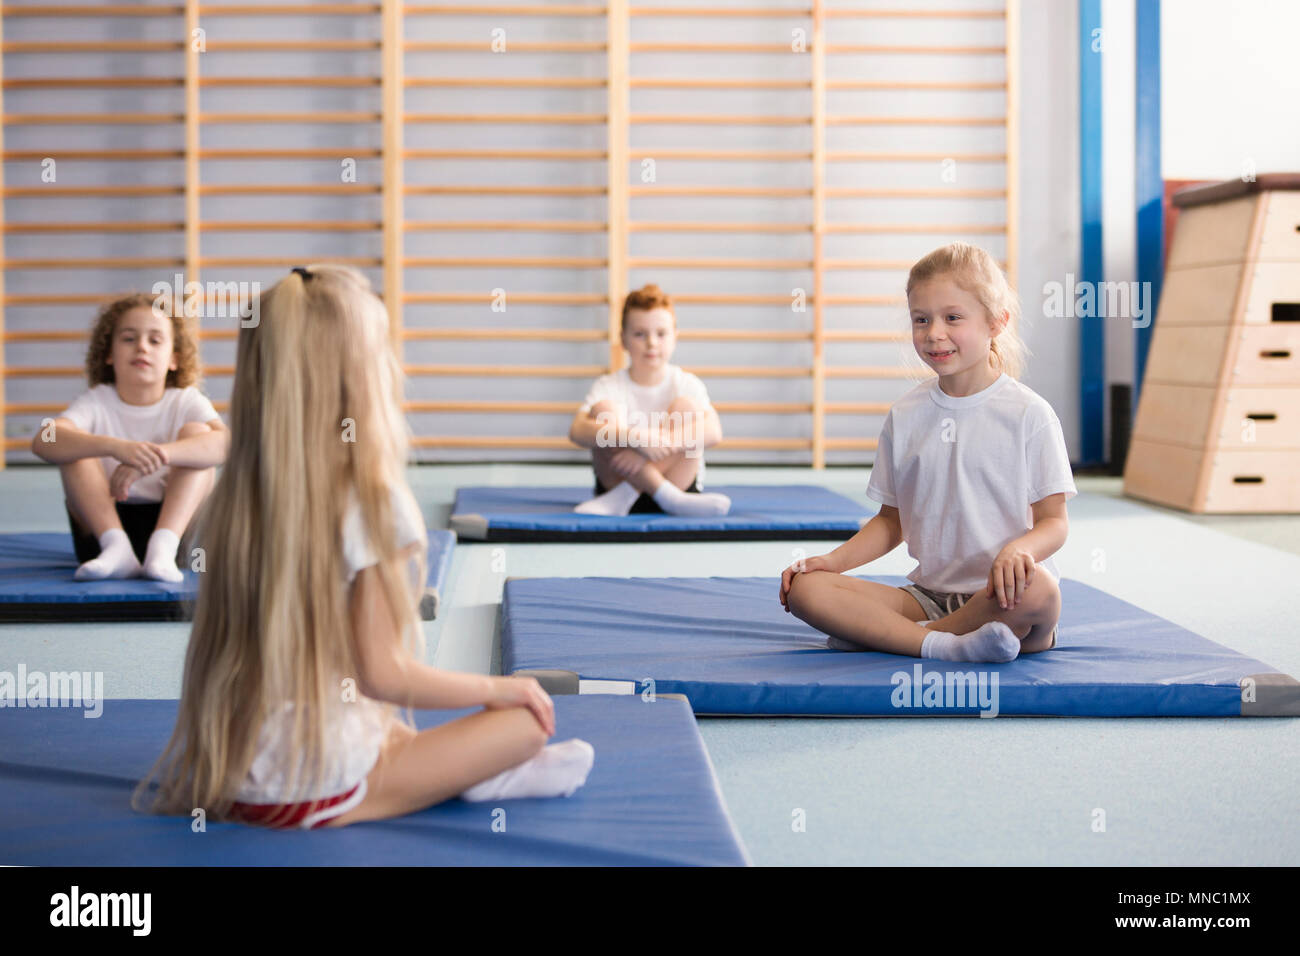 Happy young girls sitting across from each other on blue exercising mats with their legs crossed during PE classes in the primary school gym interior Stock Photo